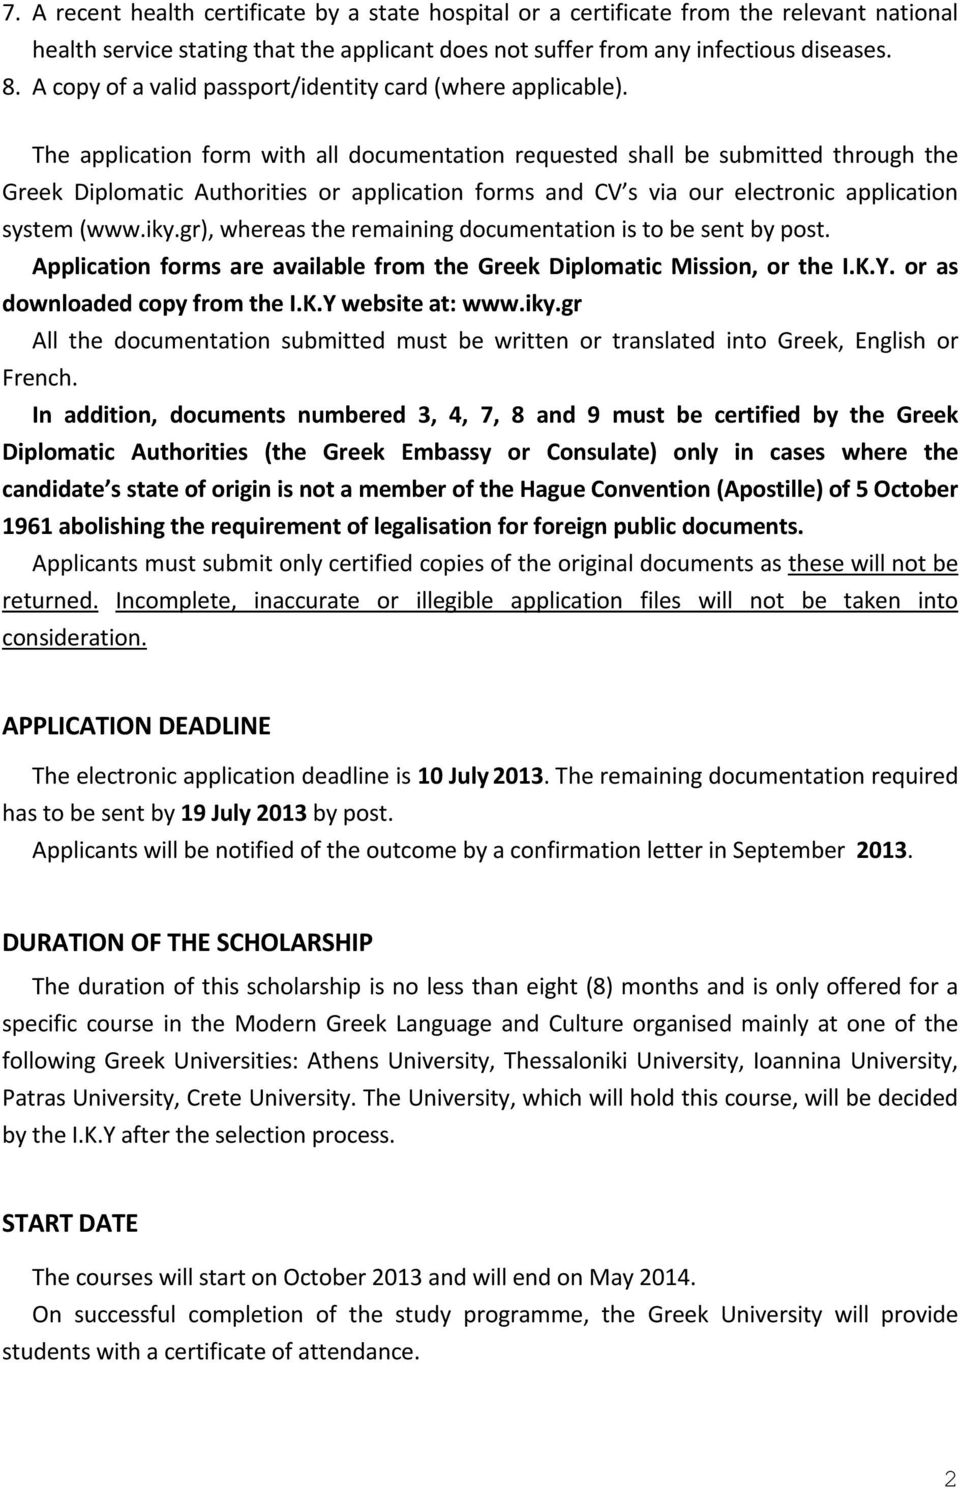 The application form with all documentation requested shall be submitted through the Greek Diplomatic Authorities or application forms and CV s via our electronic application system (www.iky.